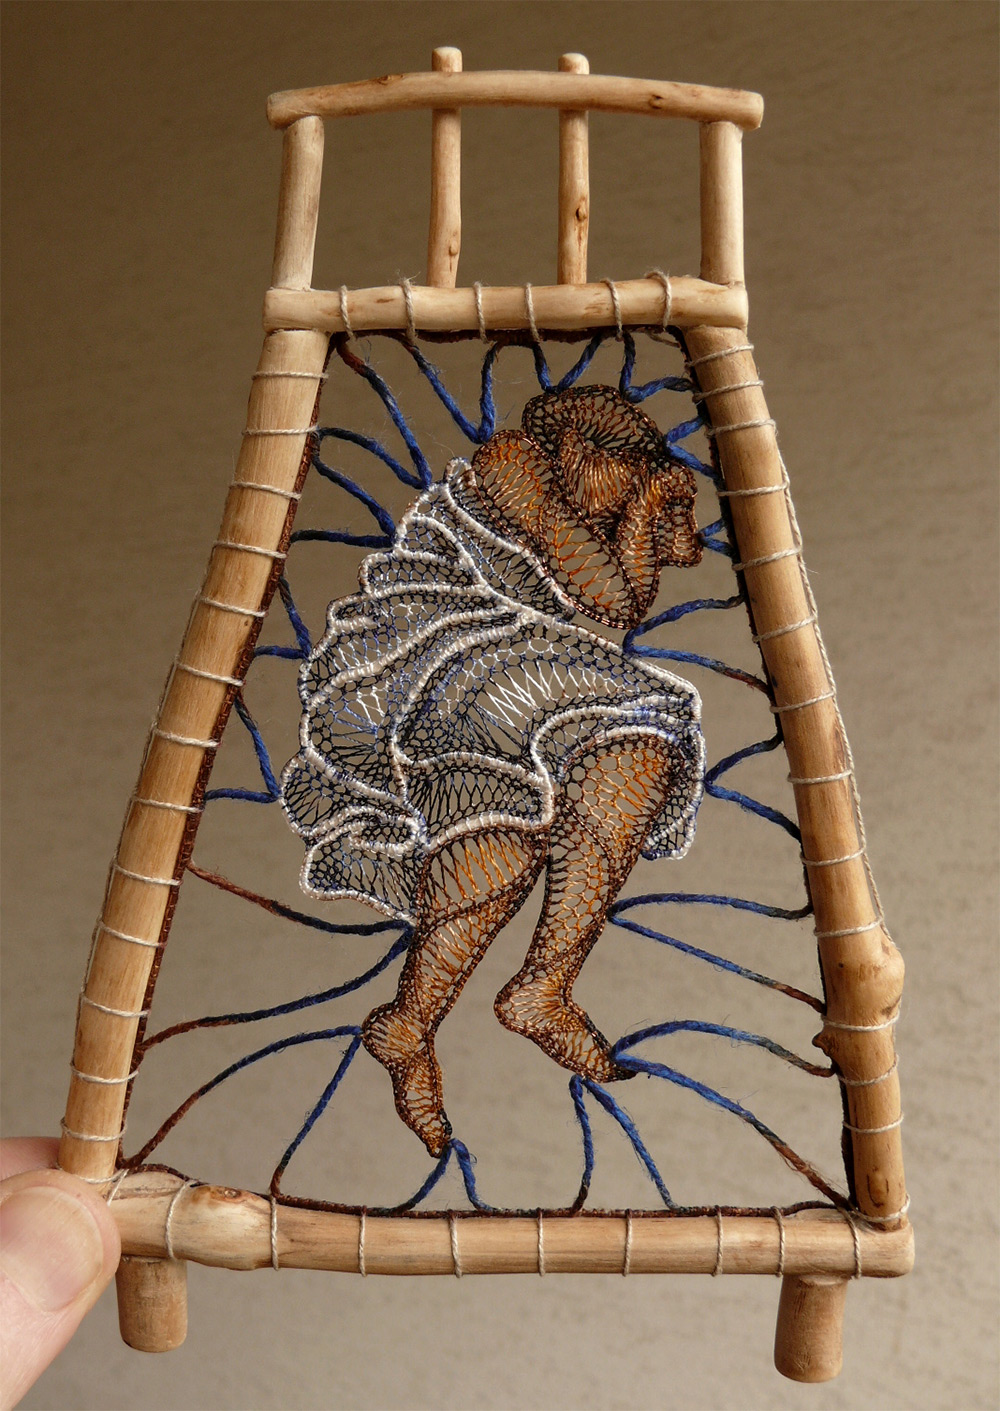 Figural Lace Sculptures Attached to Found Wood by Agnes Herczeg